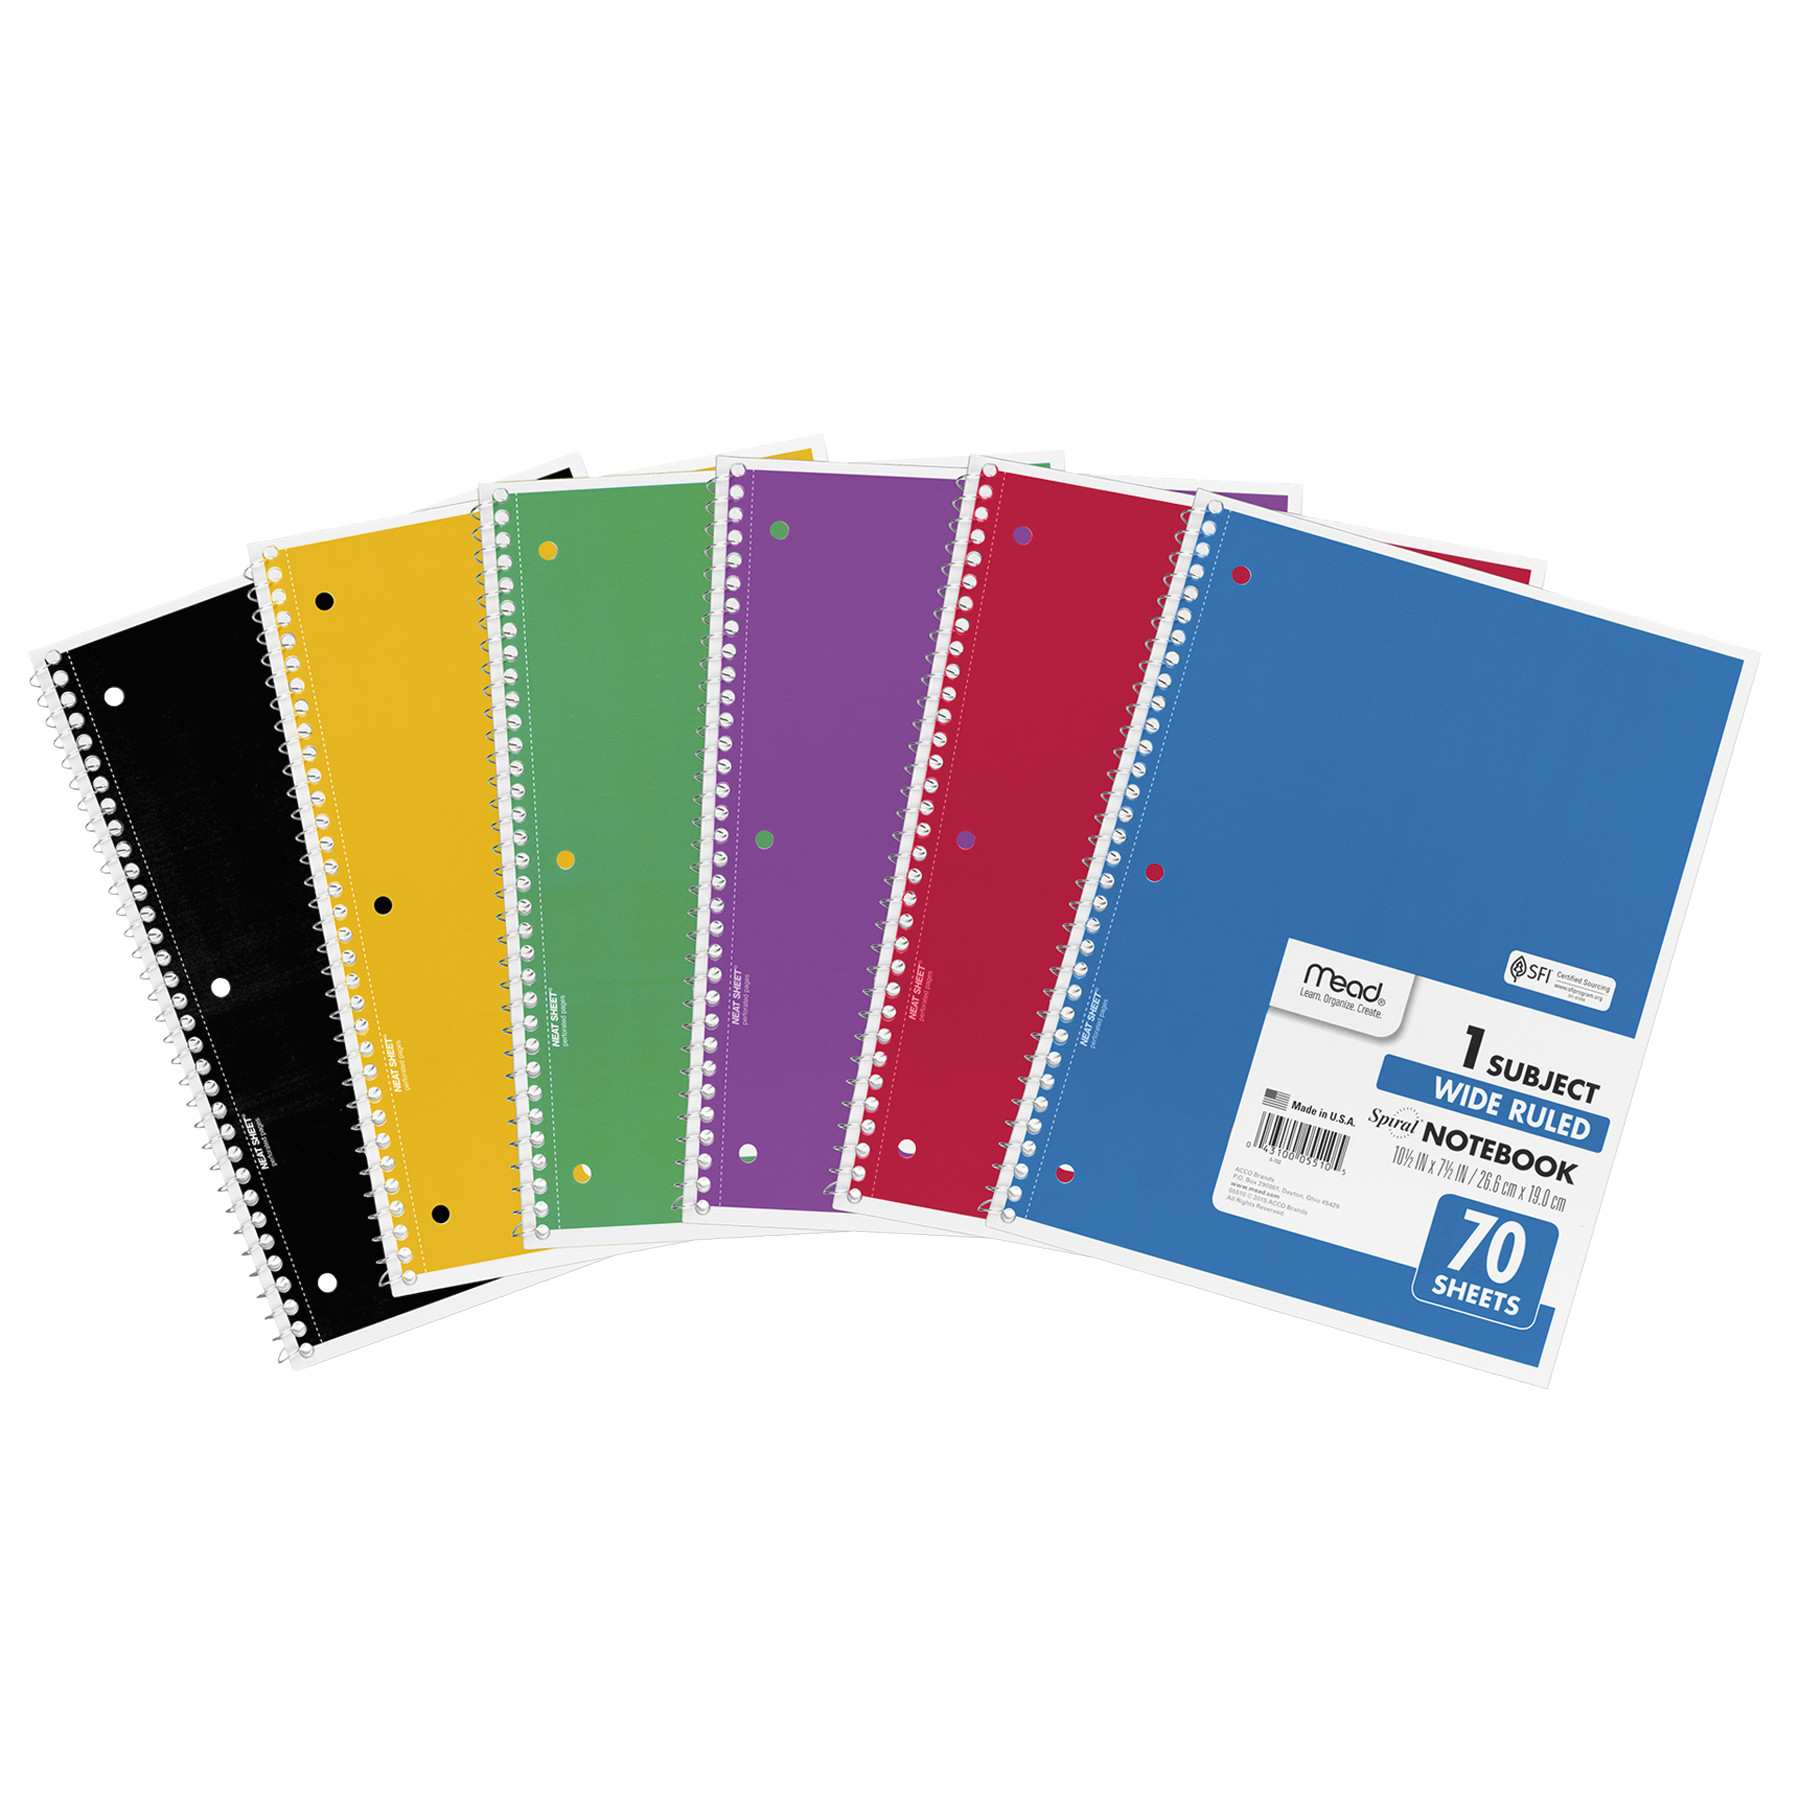 Mead Spiral Bound Notebook, Perforated, Legal Rule, 10 1 2 x 7 1 2, White, 70 SHeets by MEAD PRODUCTS